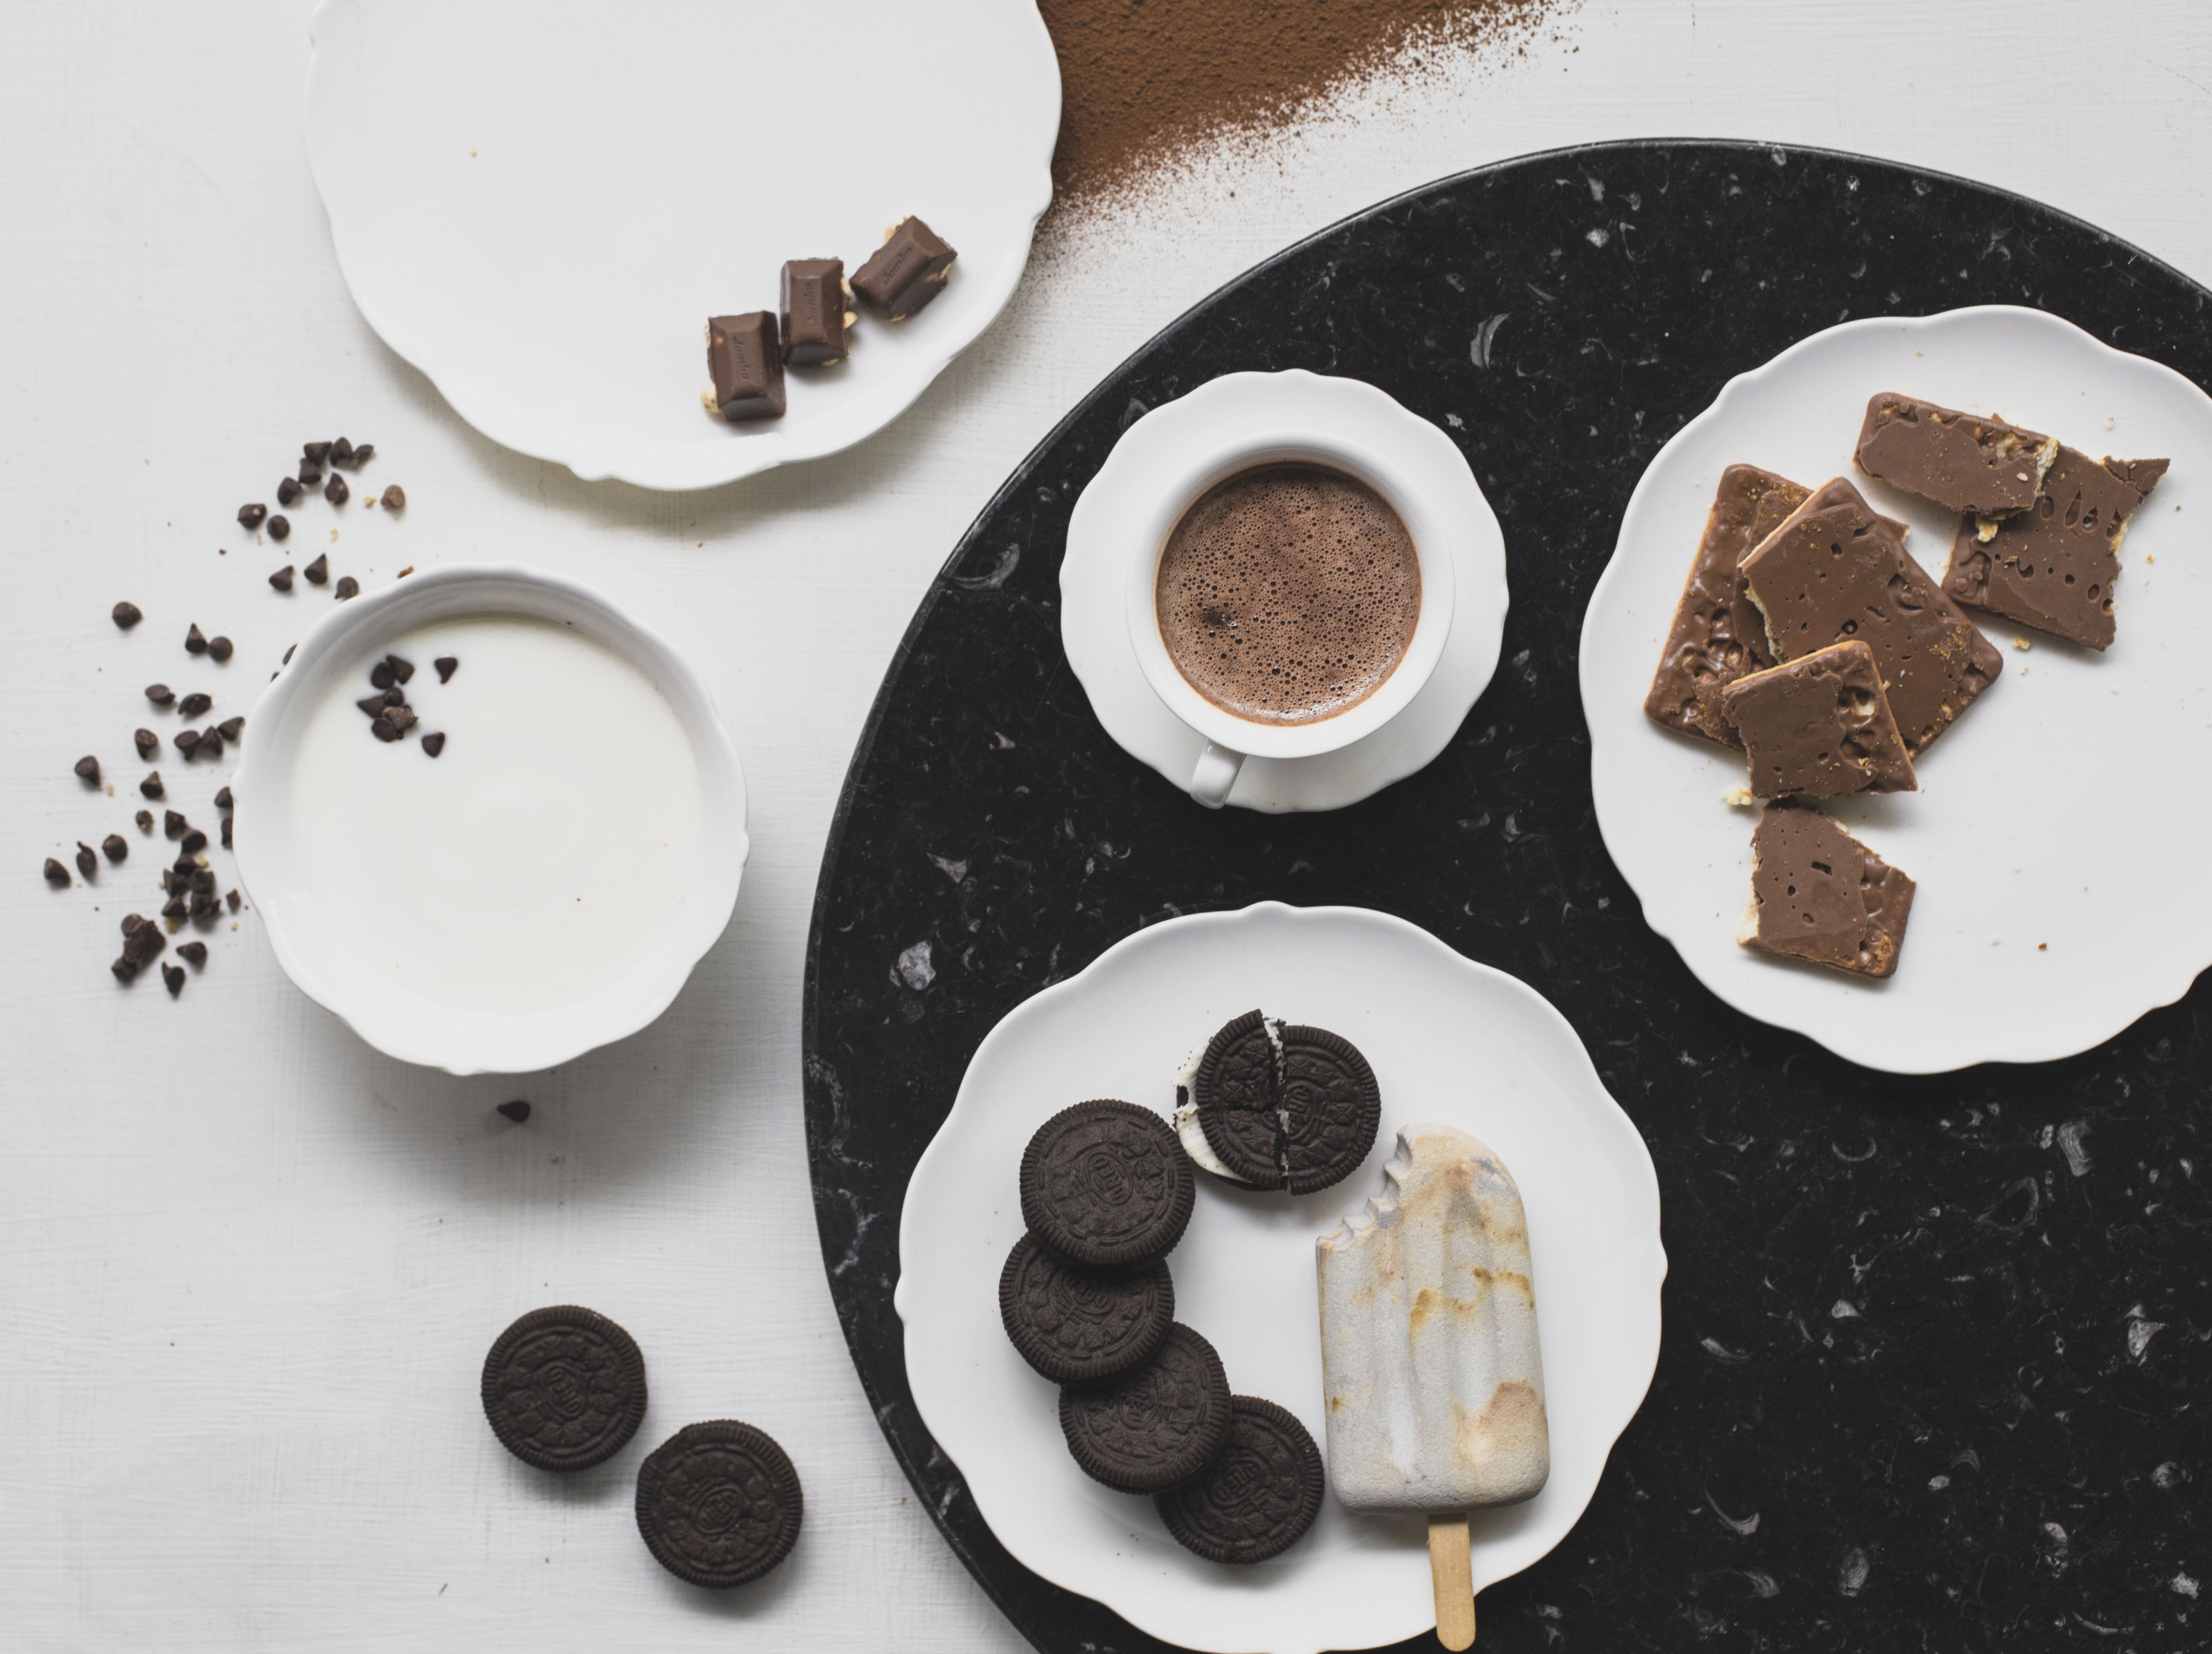 cookies on white ceramic plate with ice cream and chocolate drink